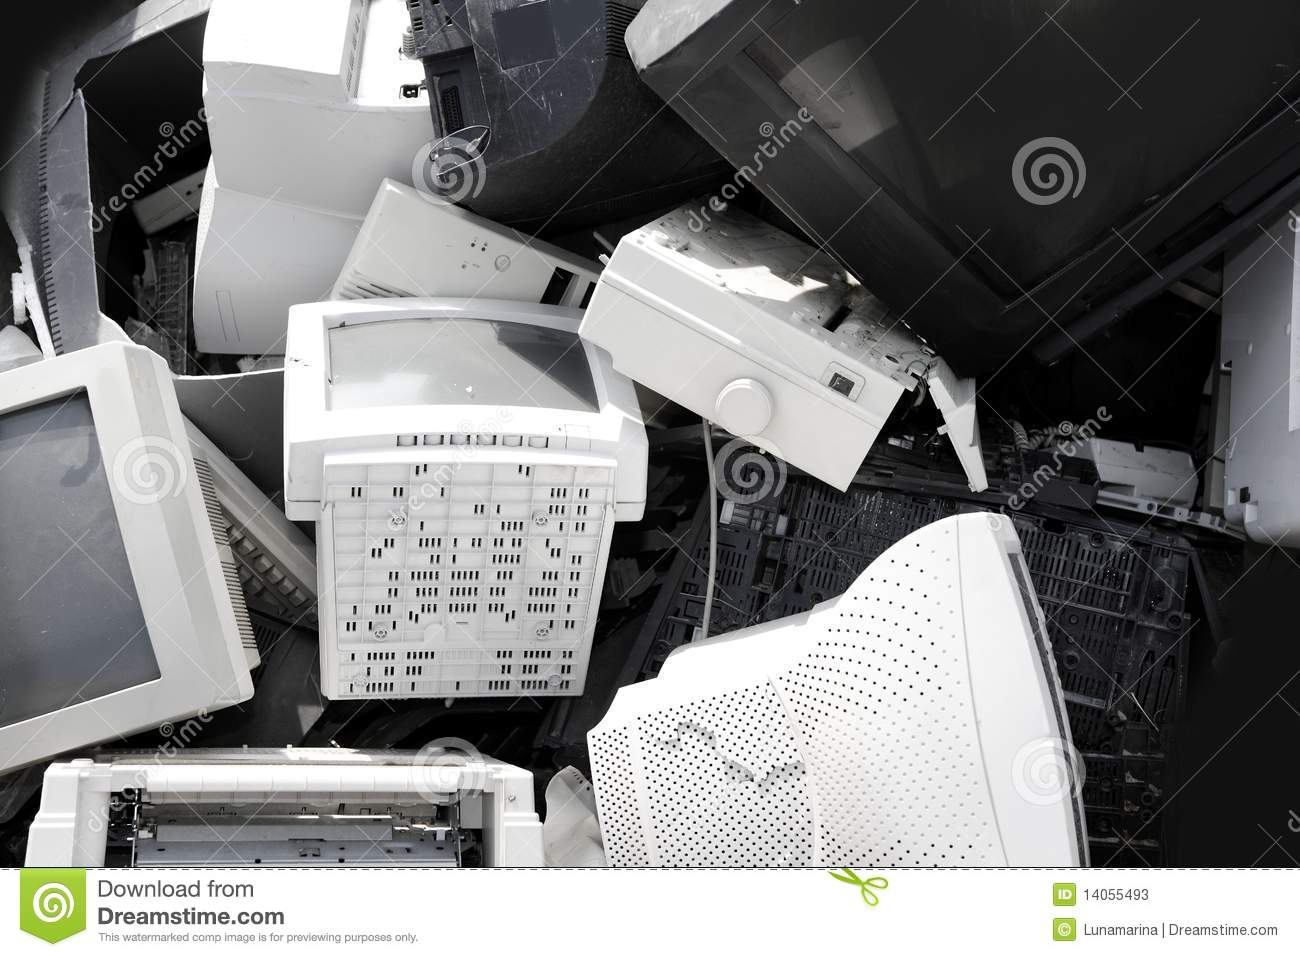 Download Hardware Computer Crt Monitor Recycle Industry Stock Image - Image of industry, mound: 14055493